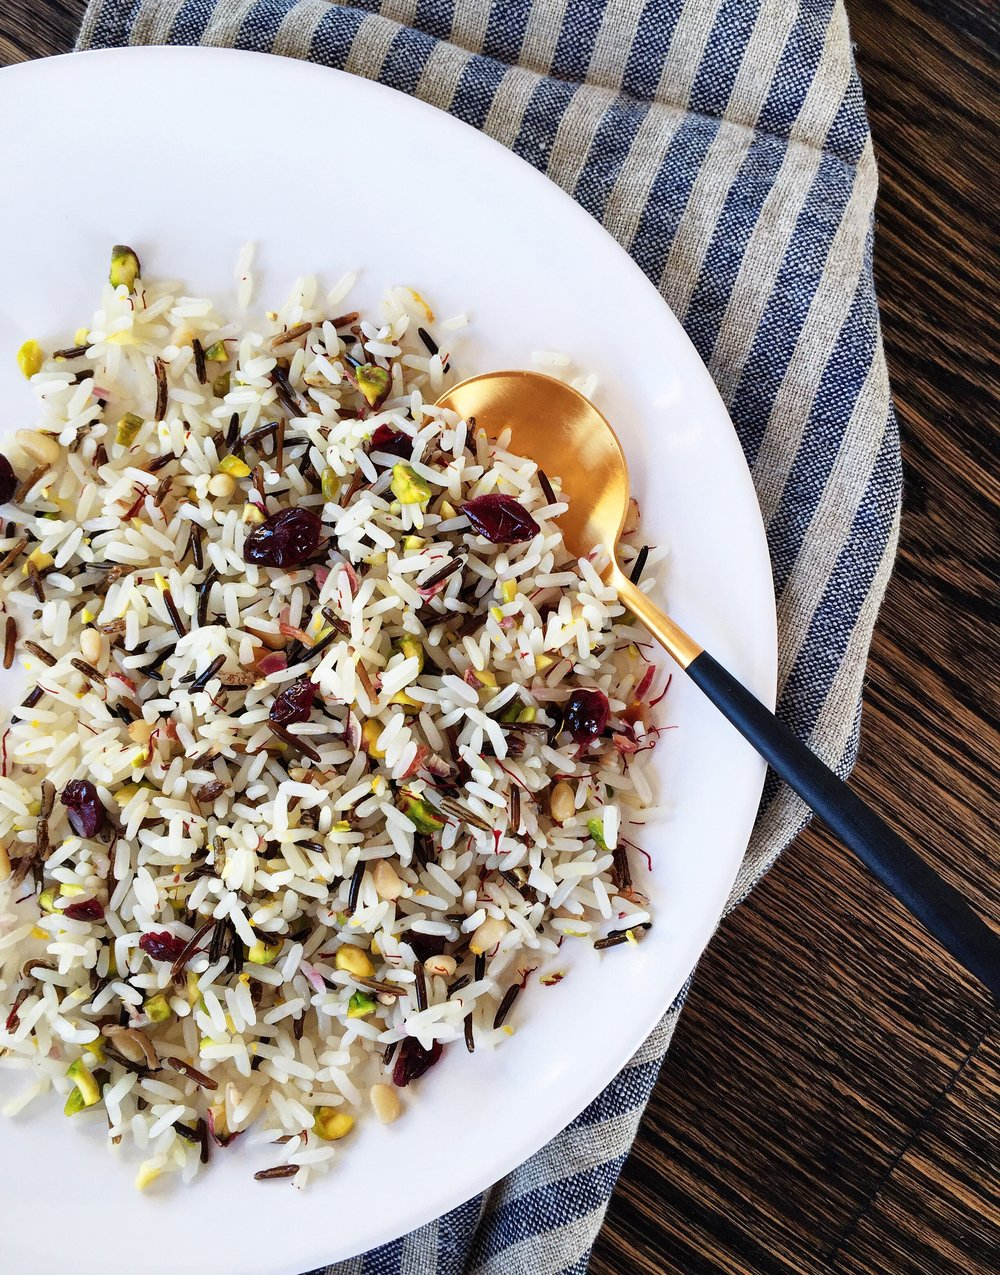 Long grain & wild rice + unsalted pistachios, toasted pine nuts, dried cranberries, lemon zest, saffron.